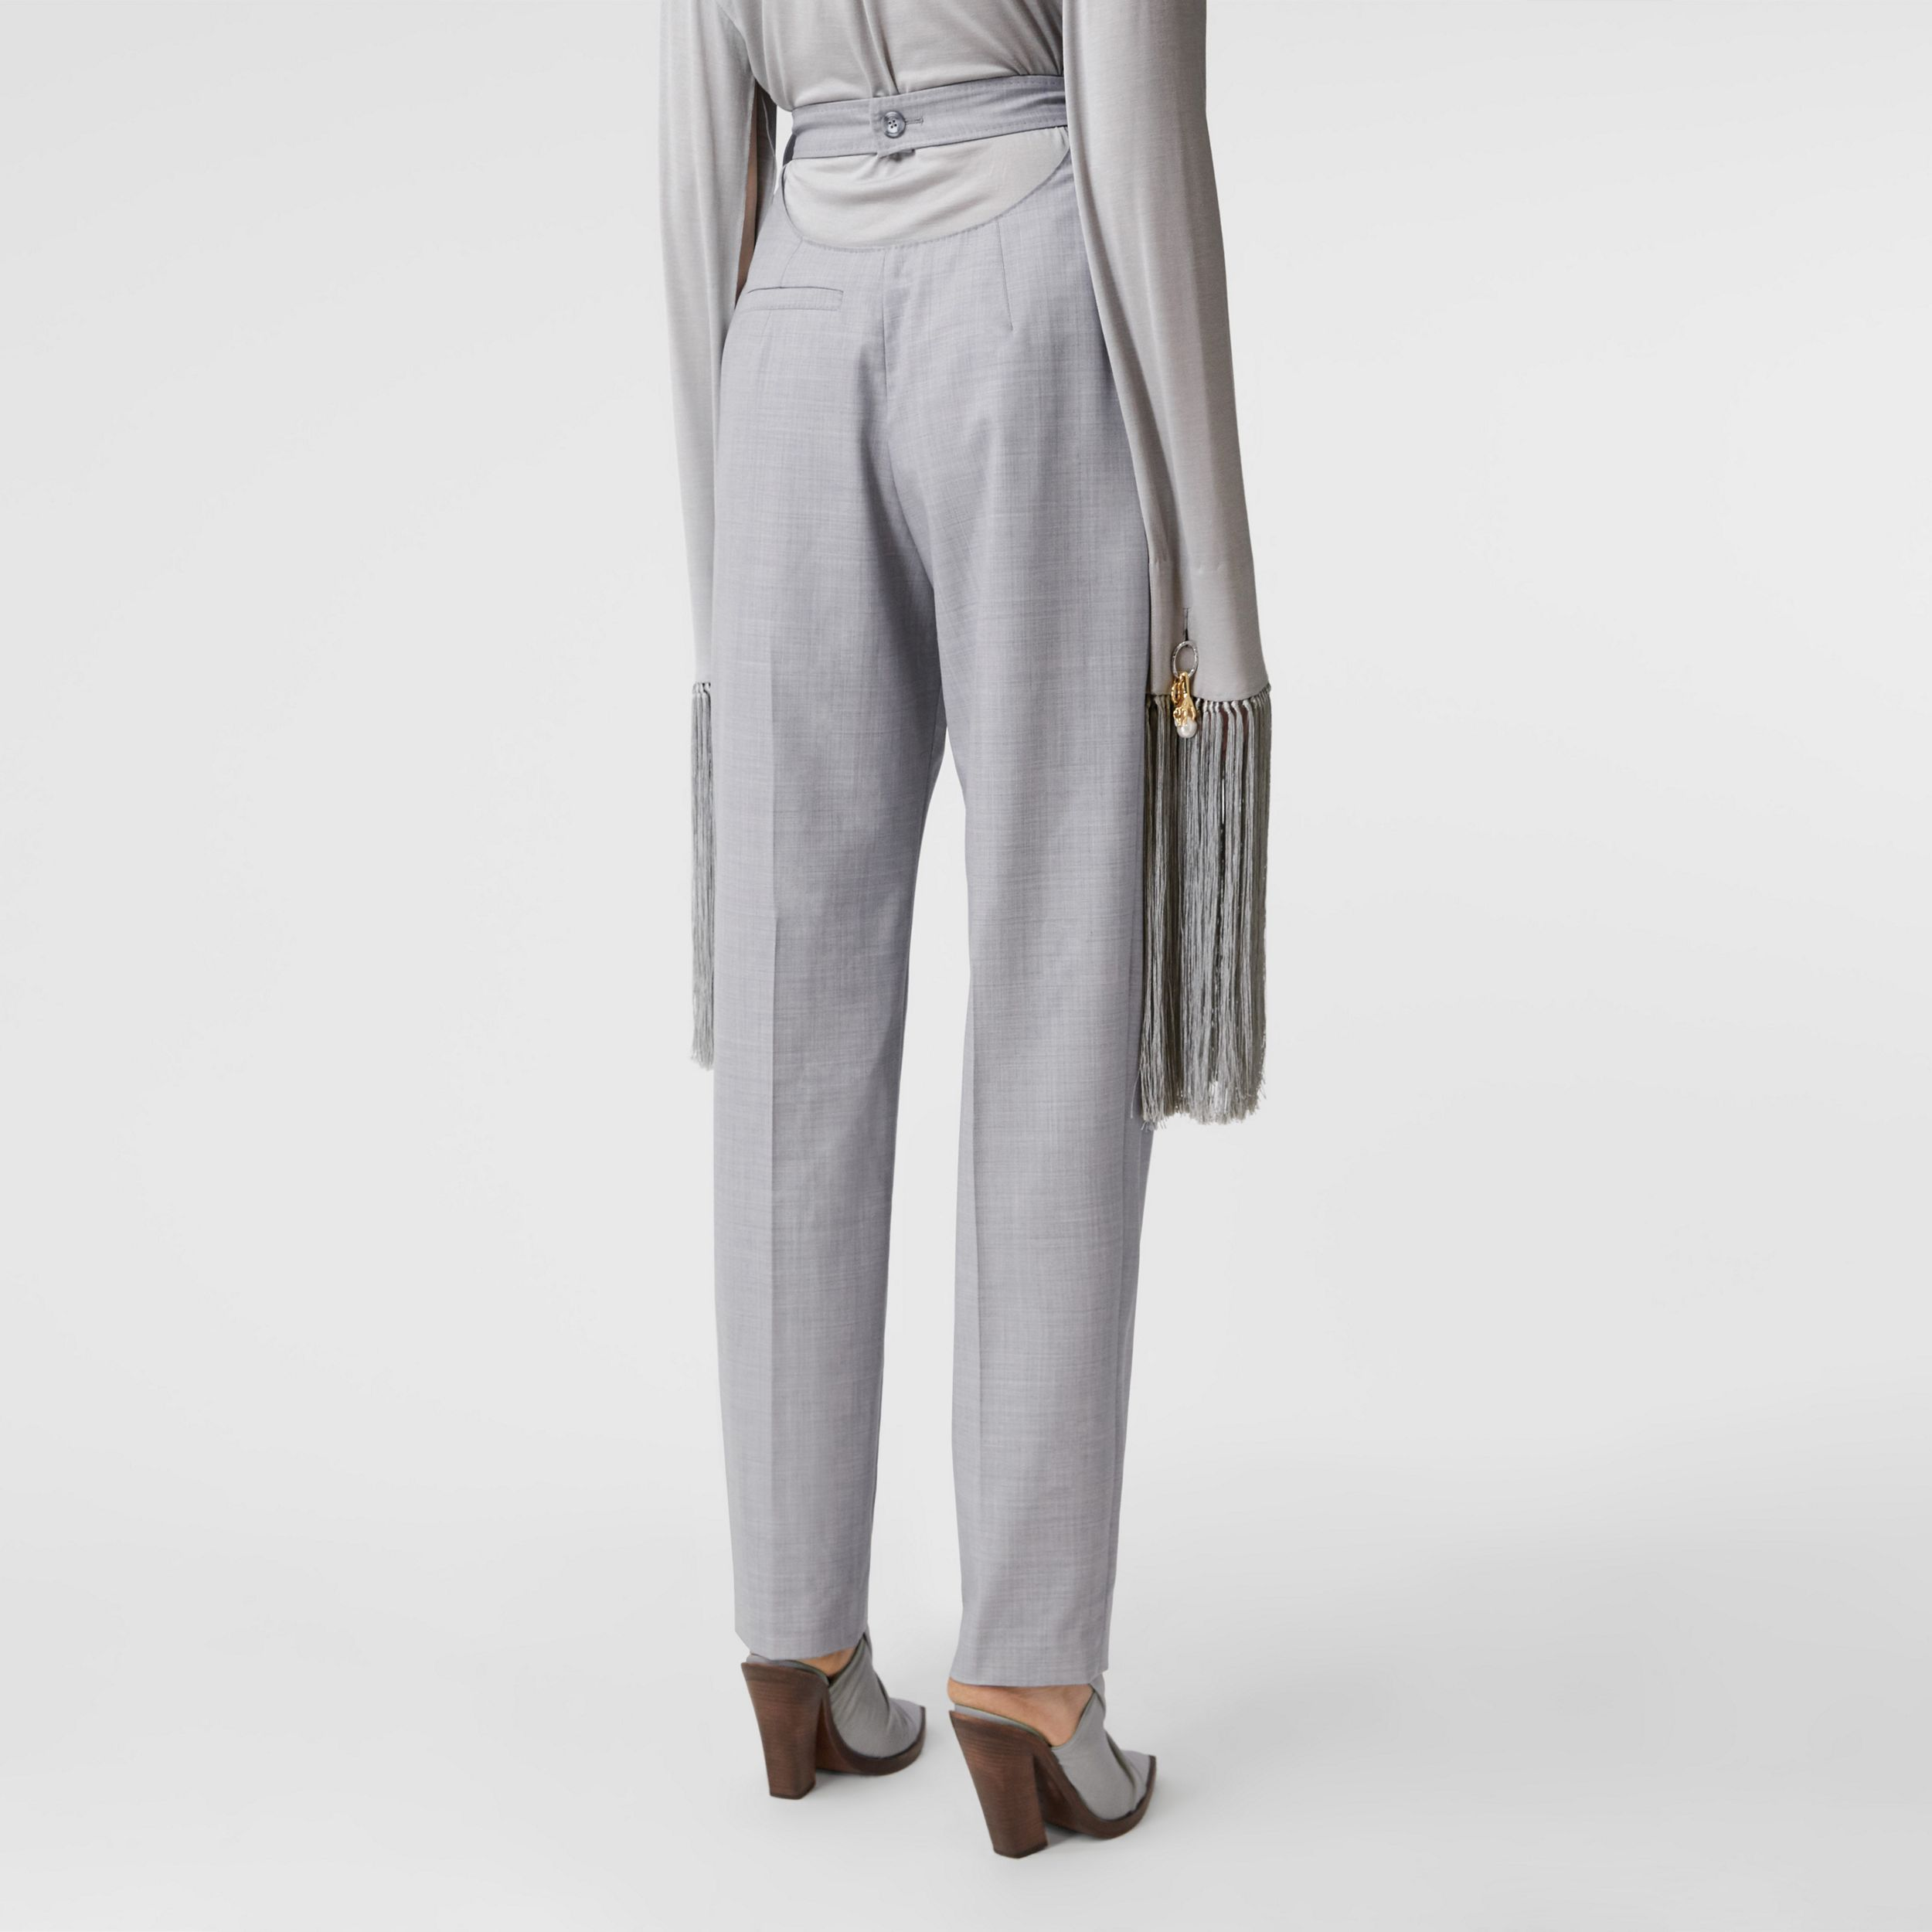 Cut-out Detail Wool Tailored Trousers in Heather Melange - Women | Burberry - 3